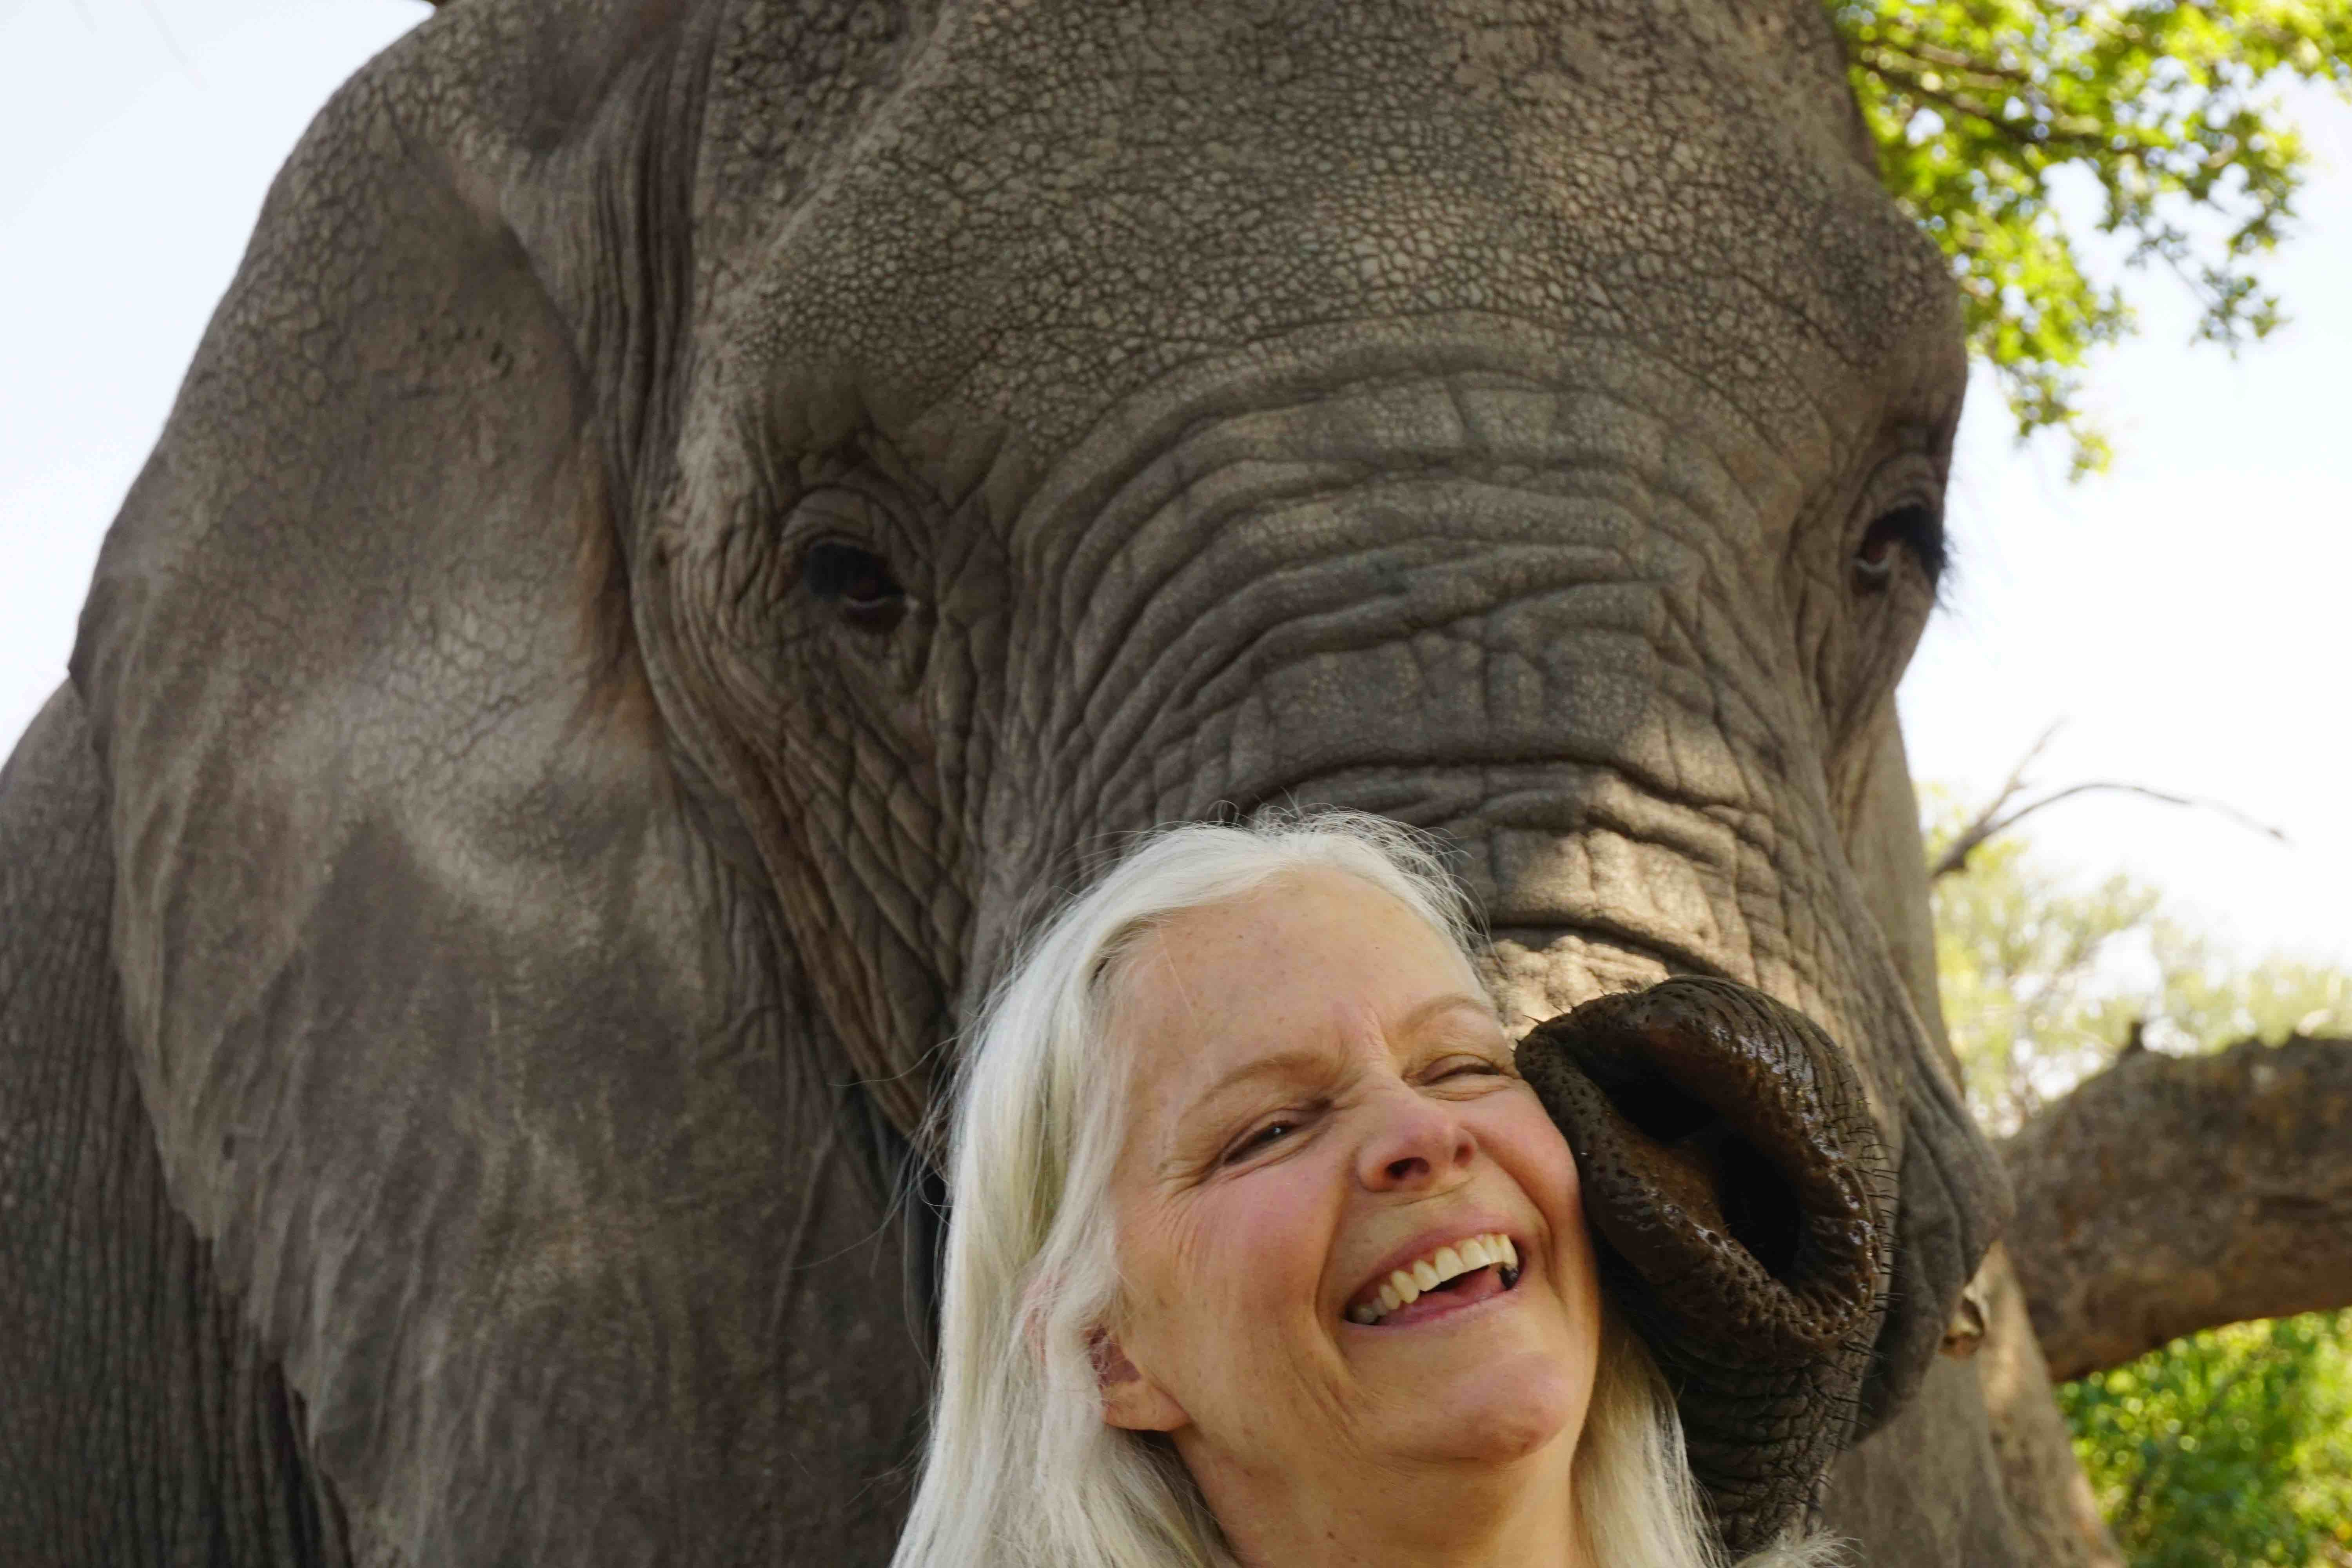 Lori Robinson kissed by an elephant